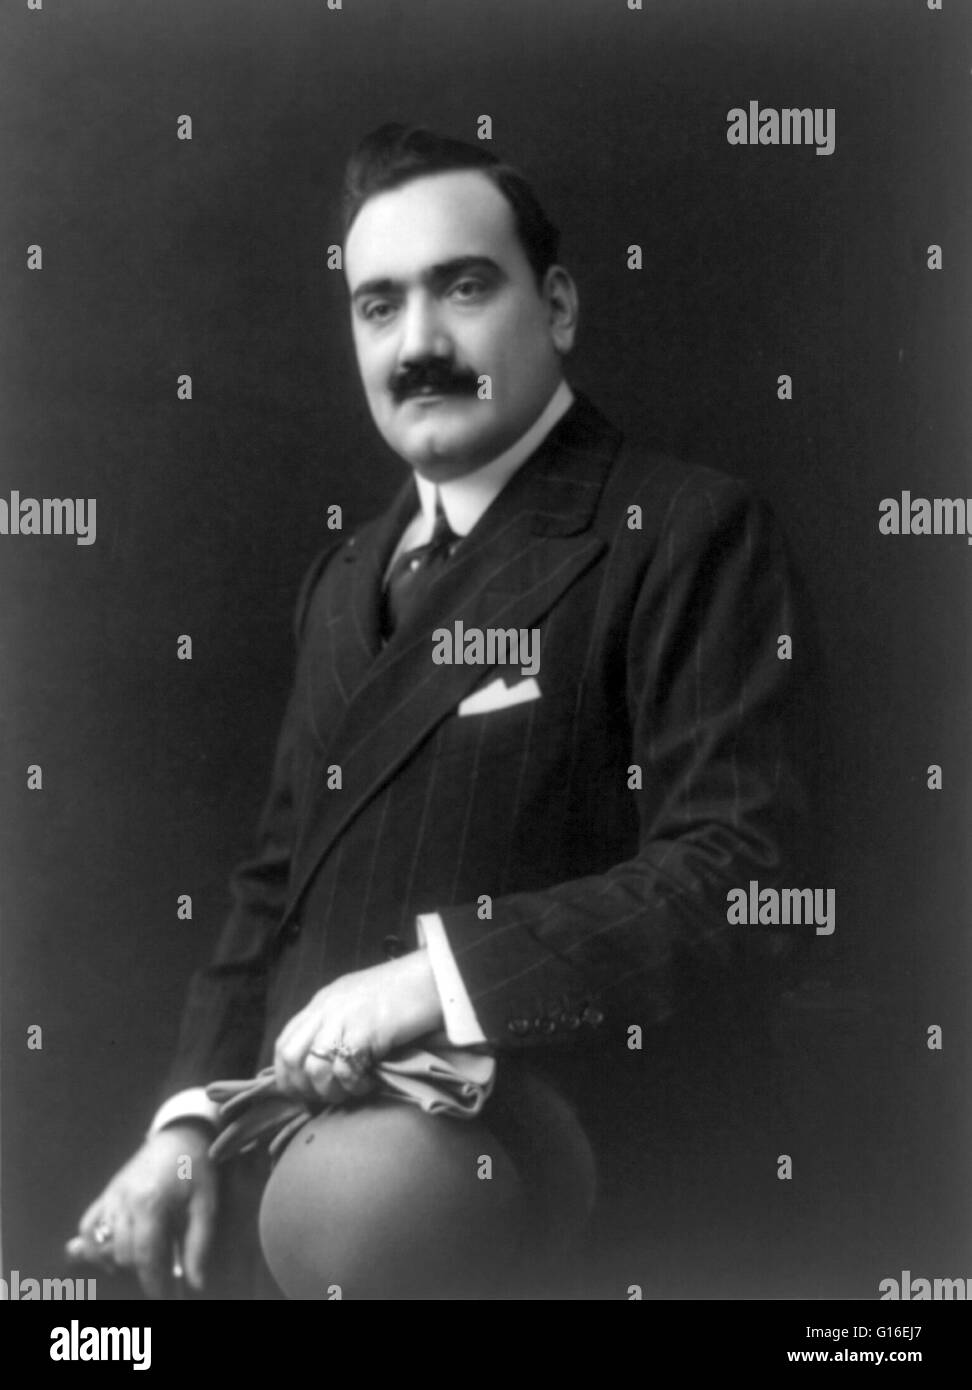 Enrico Caruso (February 25, 1873 - August 2, 1921) was an Italian operatic tenor. He sang to great acclaim at the - Stock Image